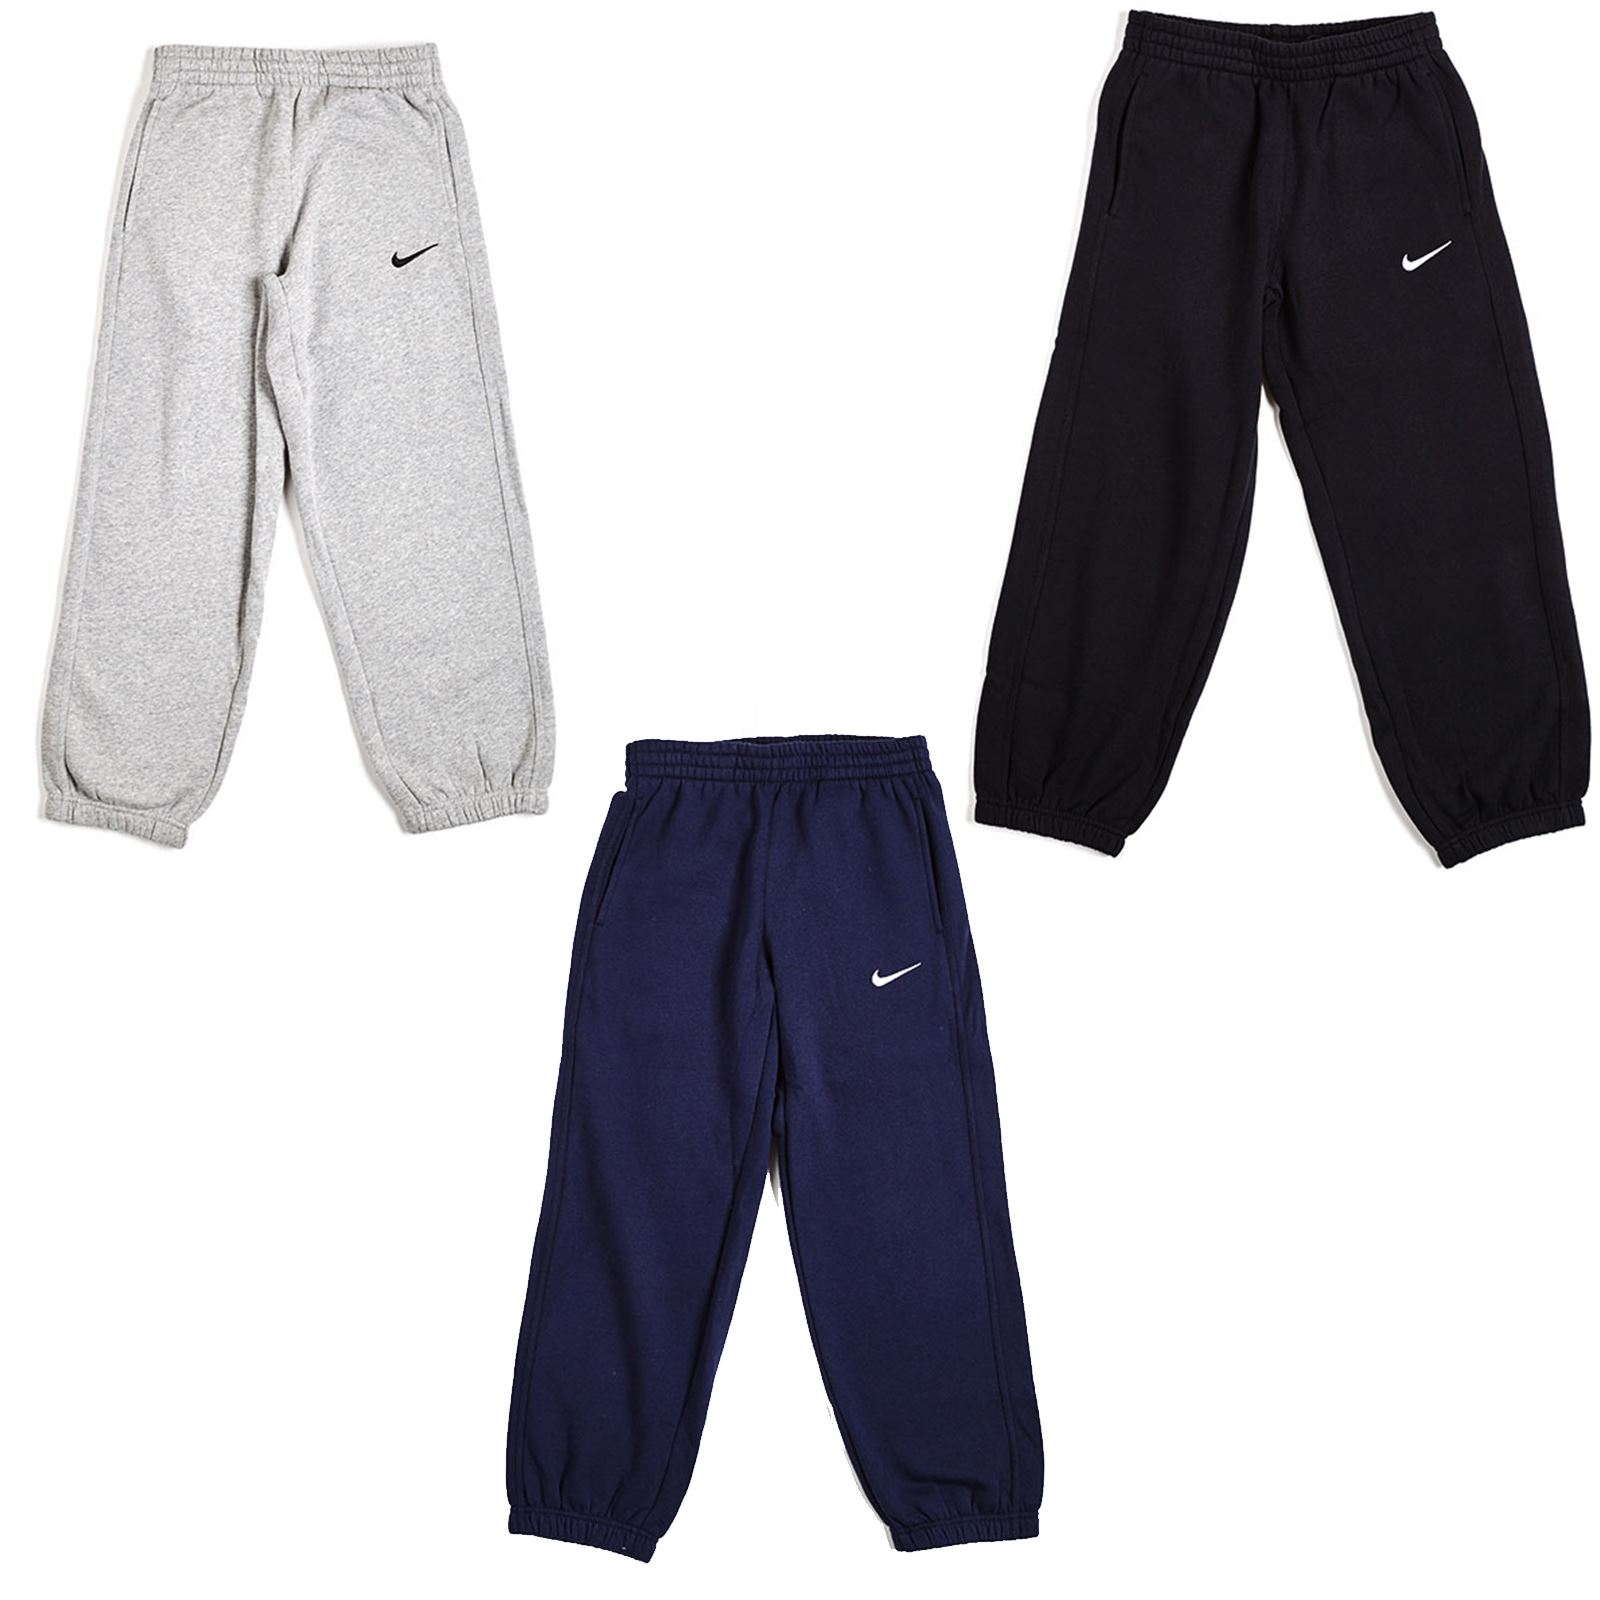 los angeles more photos where to buy Details about Nike Junior Cotton Fleece Sweat Pants Jogging Bottoms